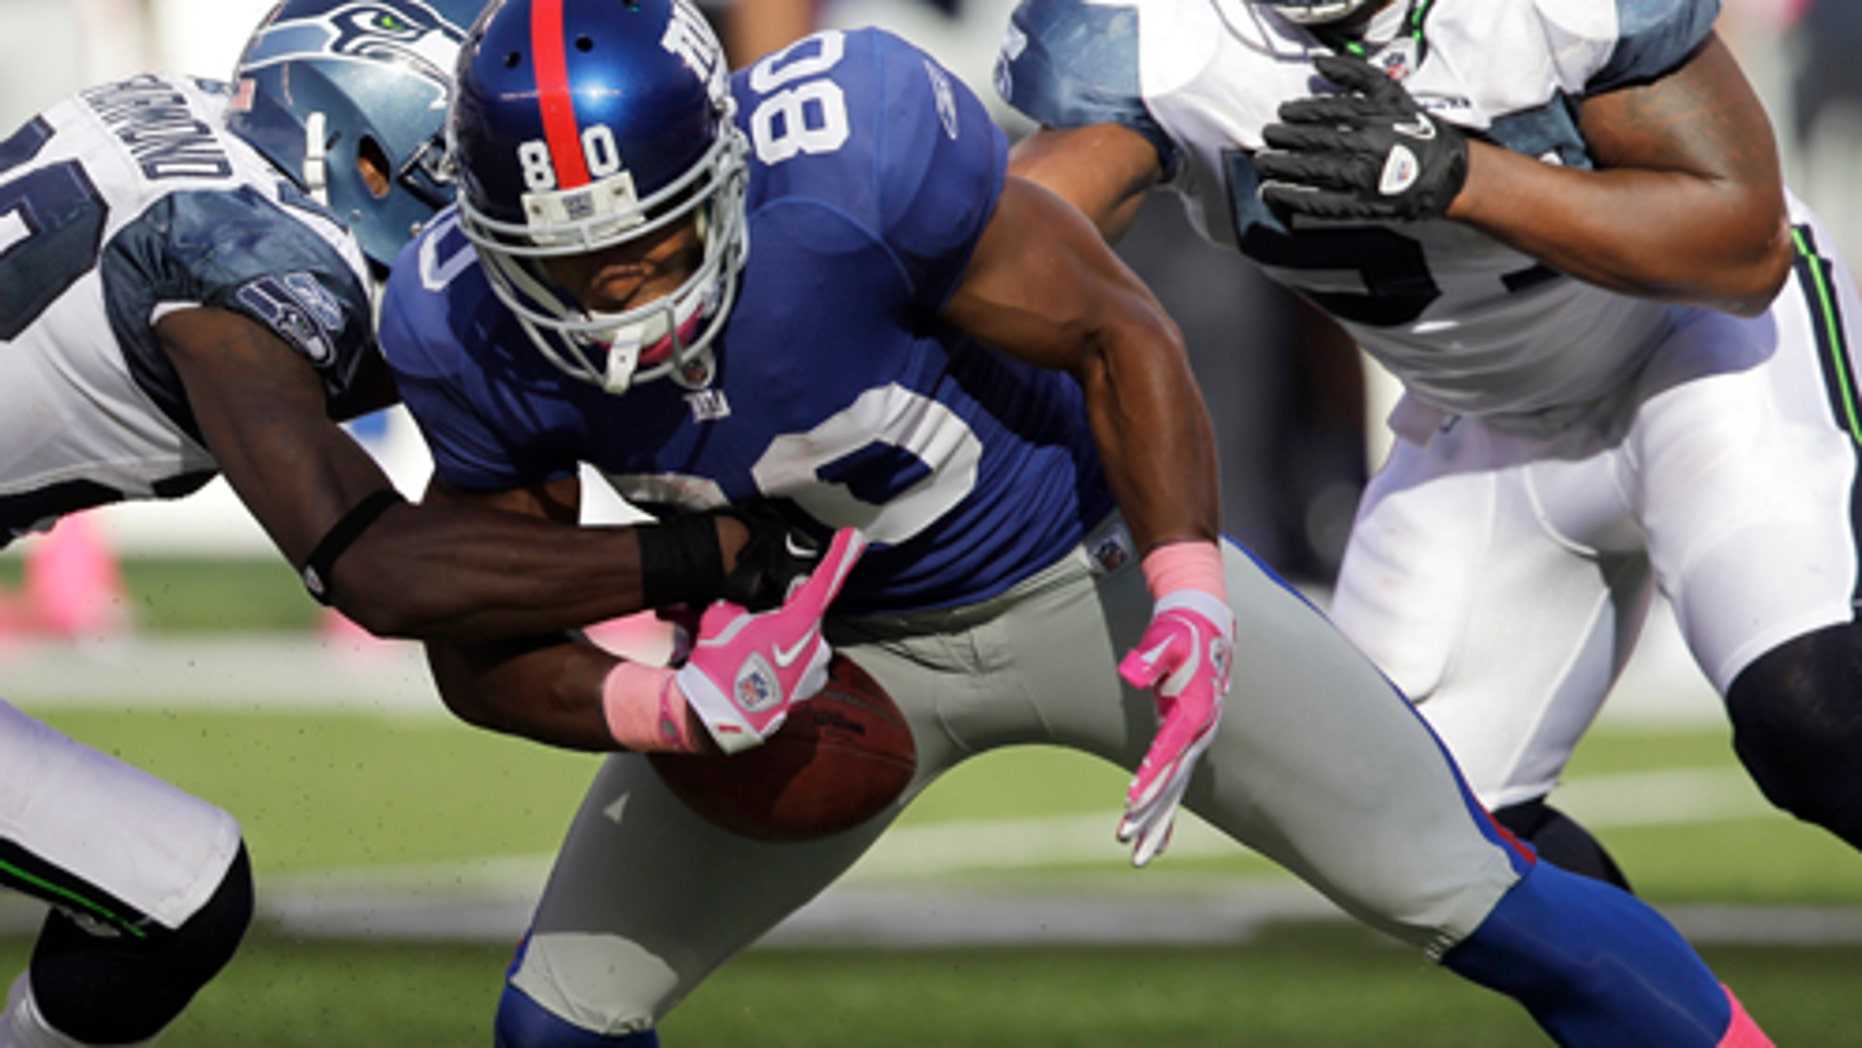 New York Giants wide receiver Victor Cruz (80) fumbles the ball as he is tackled by Seattle Seahawks defensive back Walter Thurmond (28) during the fourth quarter of an NFL football game Sunday, Oct. 9, 2011, in East Rutherford, N.J. The Seahawks won the game 36-25. (AP Photo/Julio Cortez)